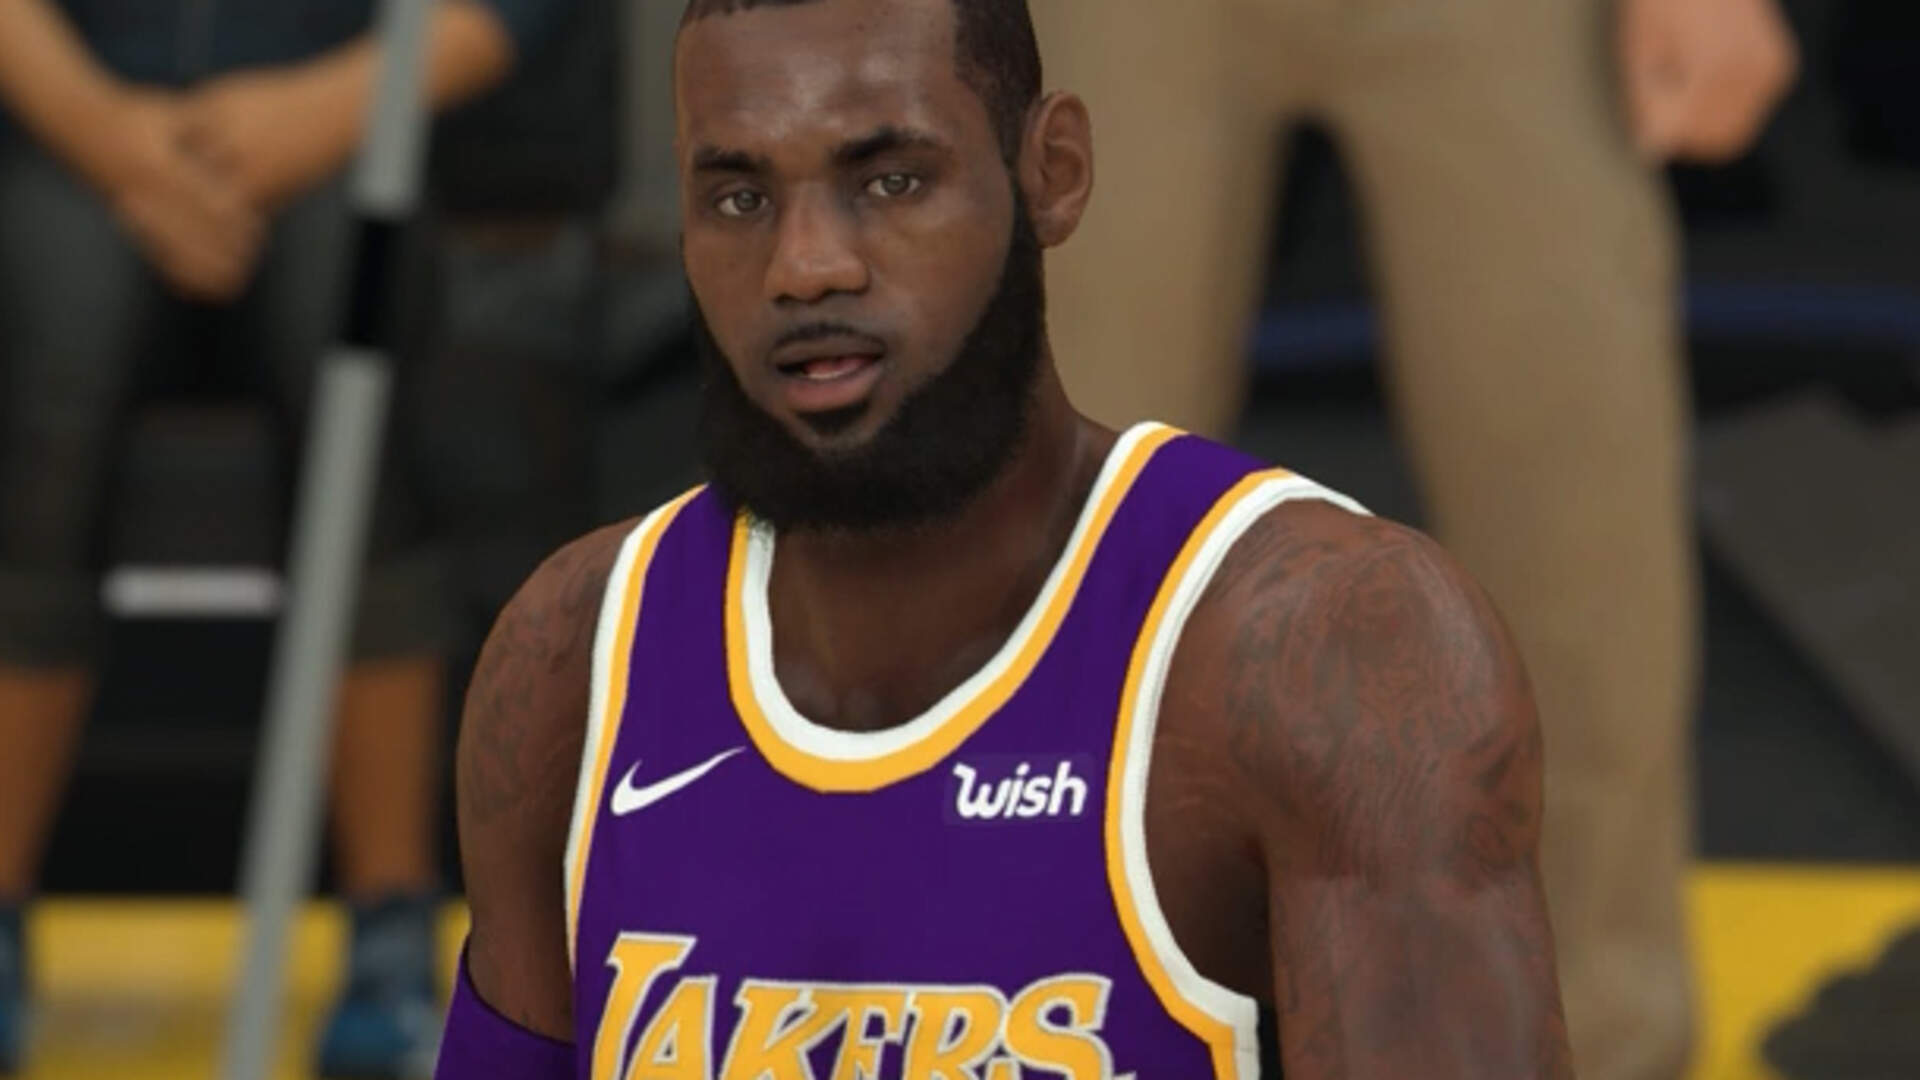 2K's New Deal With the NBA for NBA 2K is Reportedly Worth a Staggering $1.1 Billion